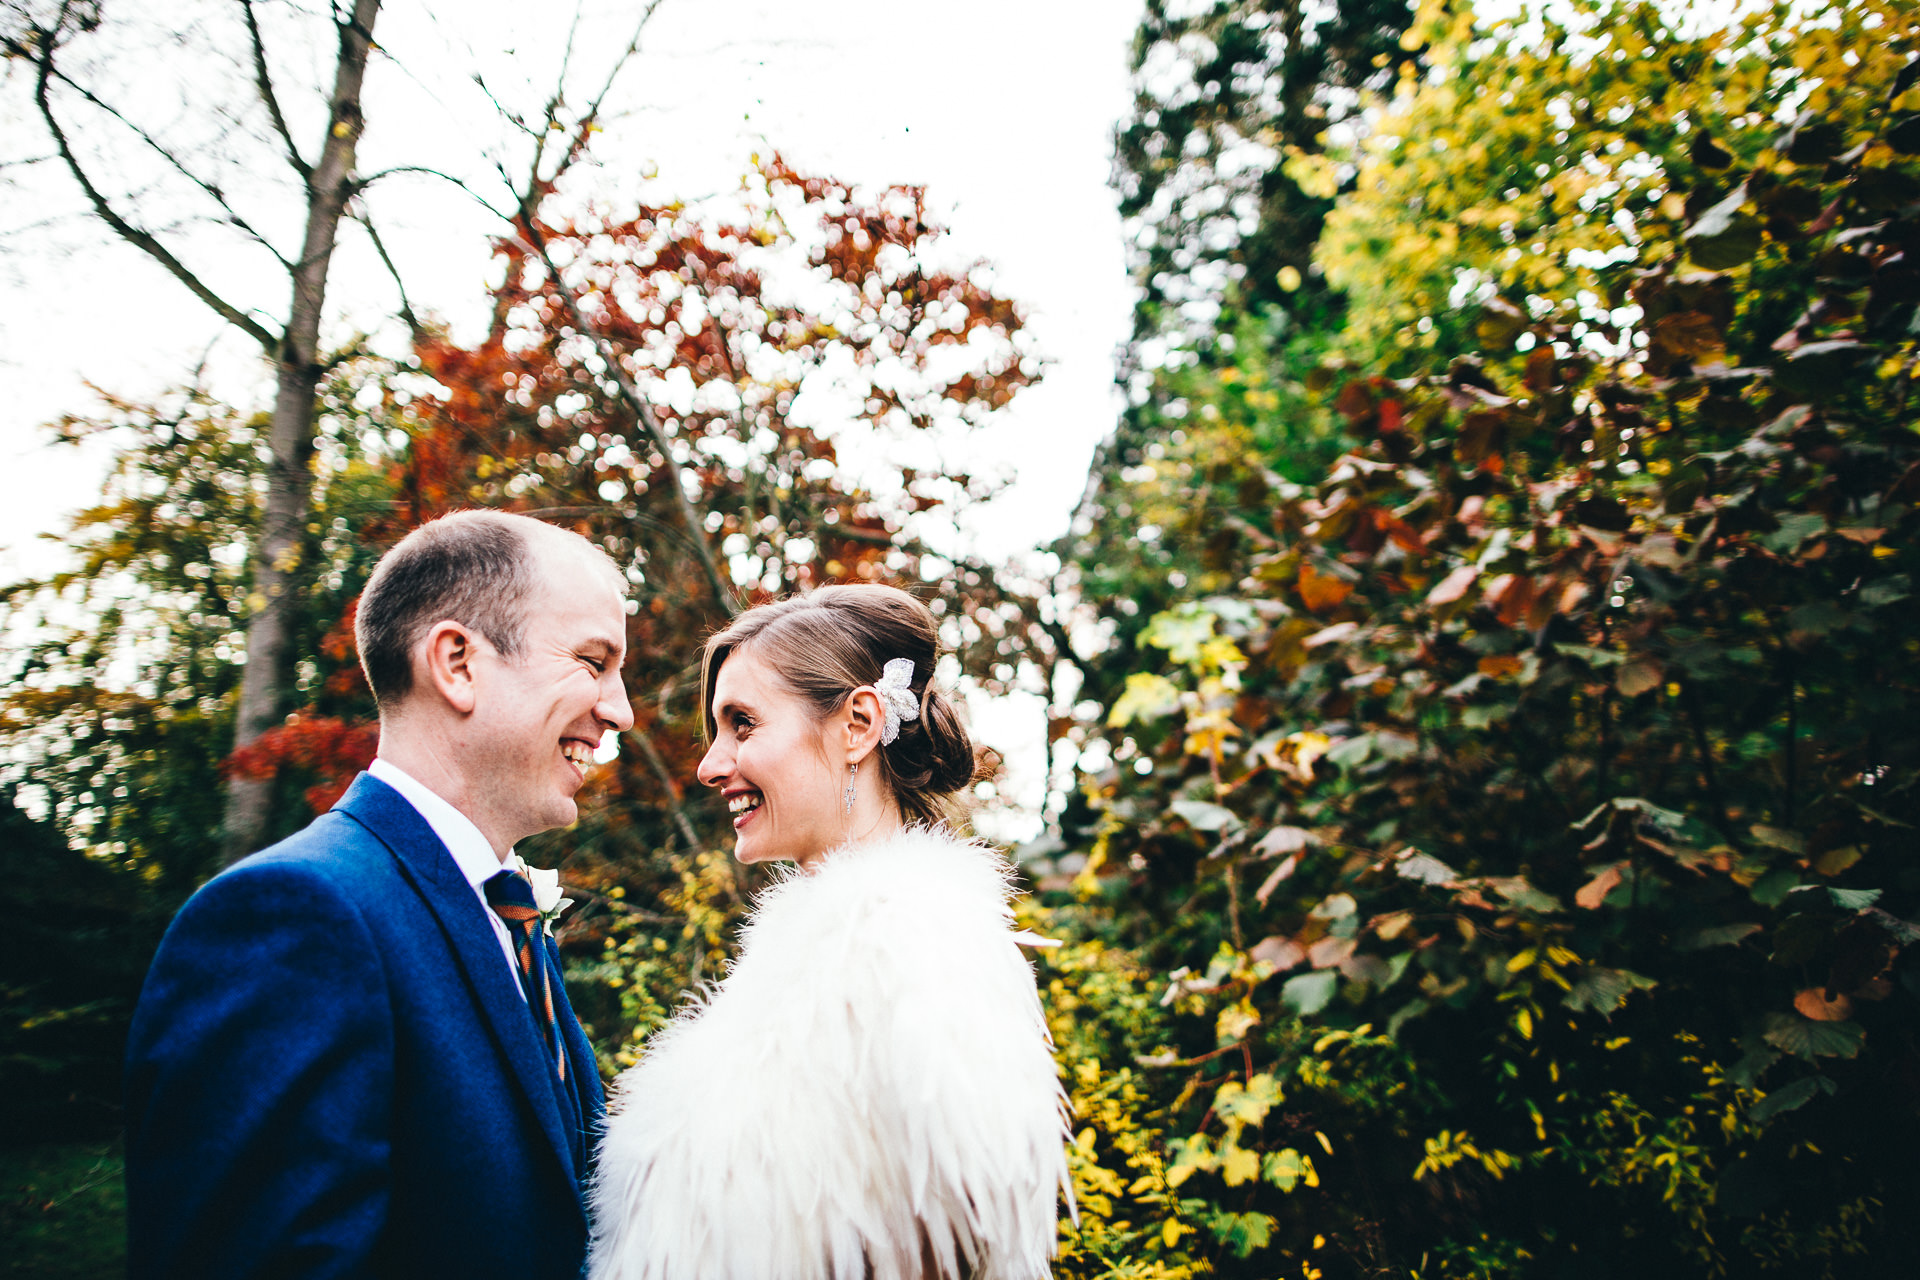 bowdon rooms wedding photographer, bowdon rooms wedding, cheshire wedding photographer, manchester wedding photographer, bowdon rooms wedding photography, creative manchester wedding photographer, candid wedding photography, ayesha photography, bride and groom, autumn wedding